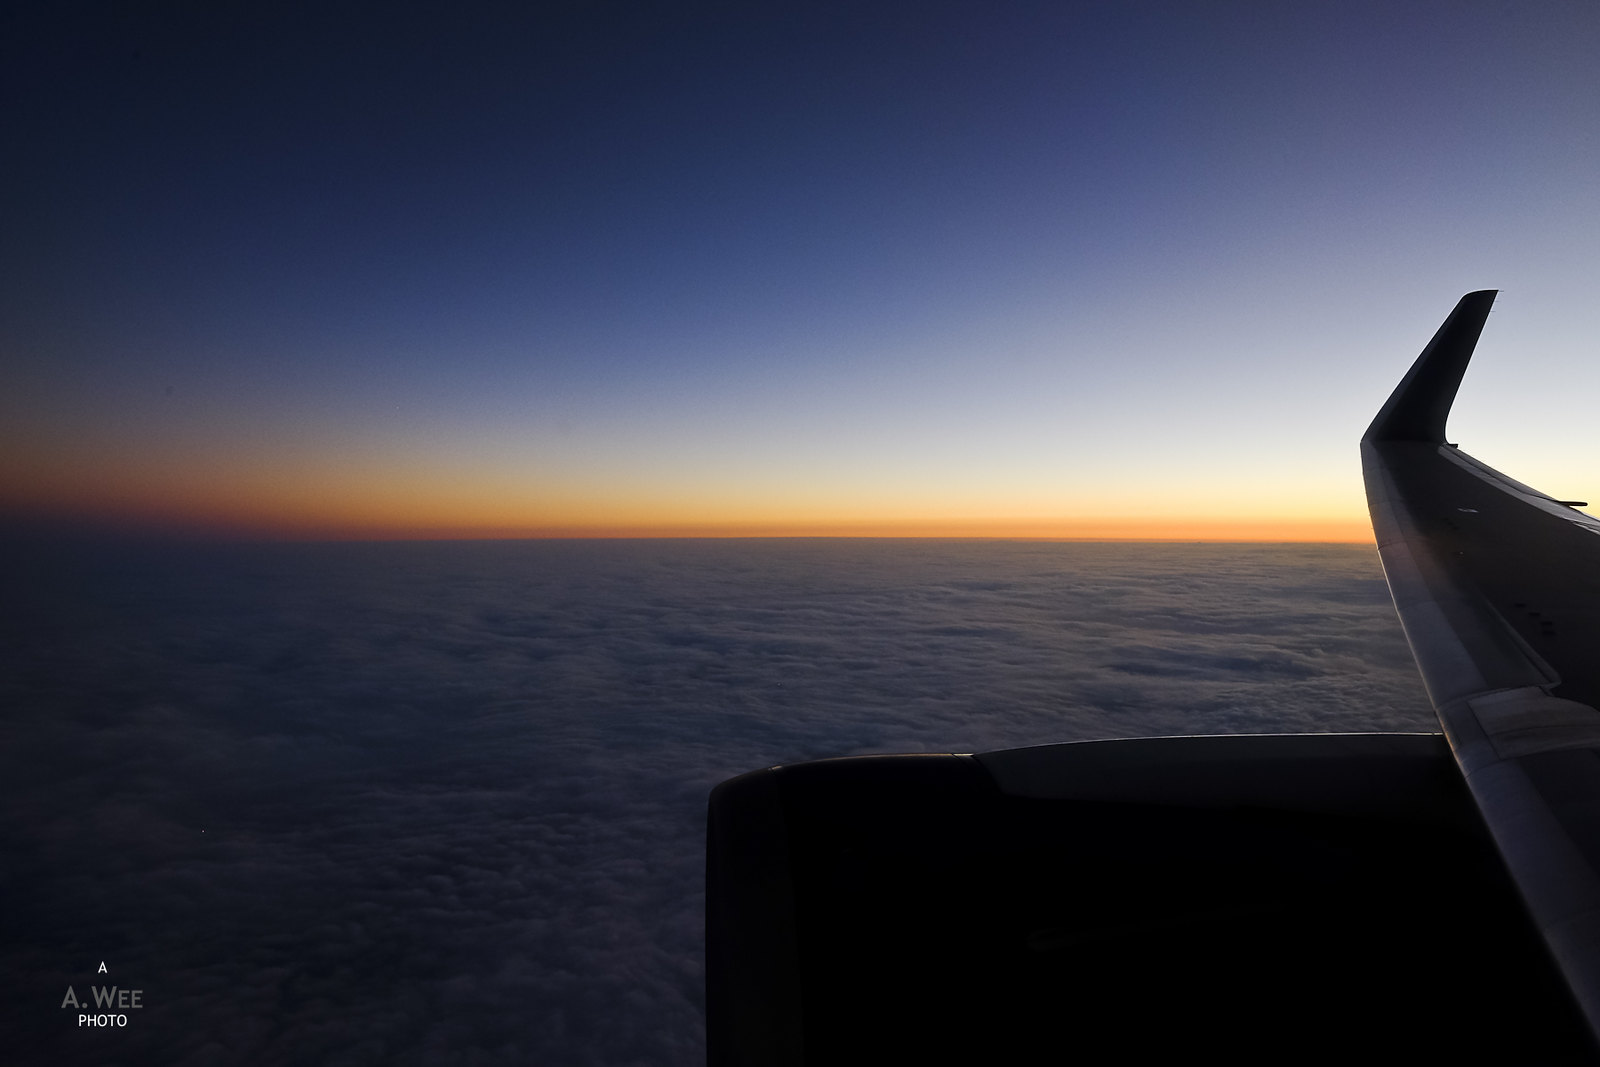 Inflight sunset